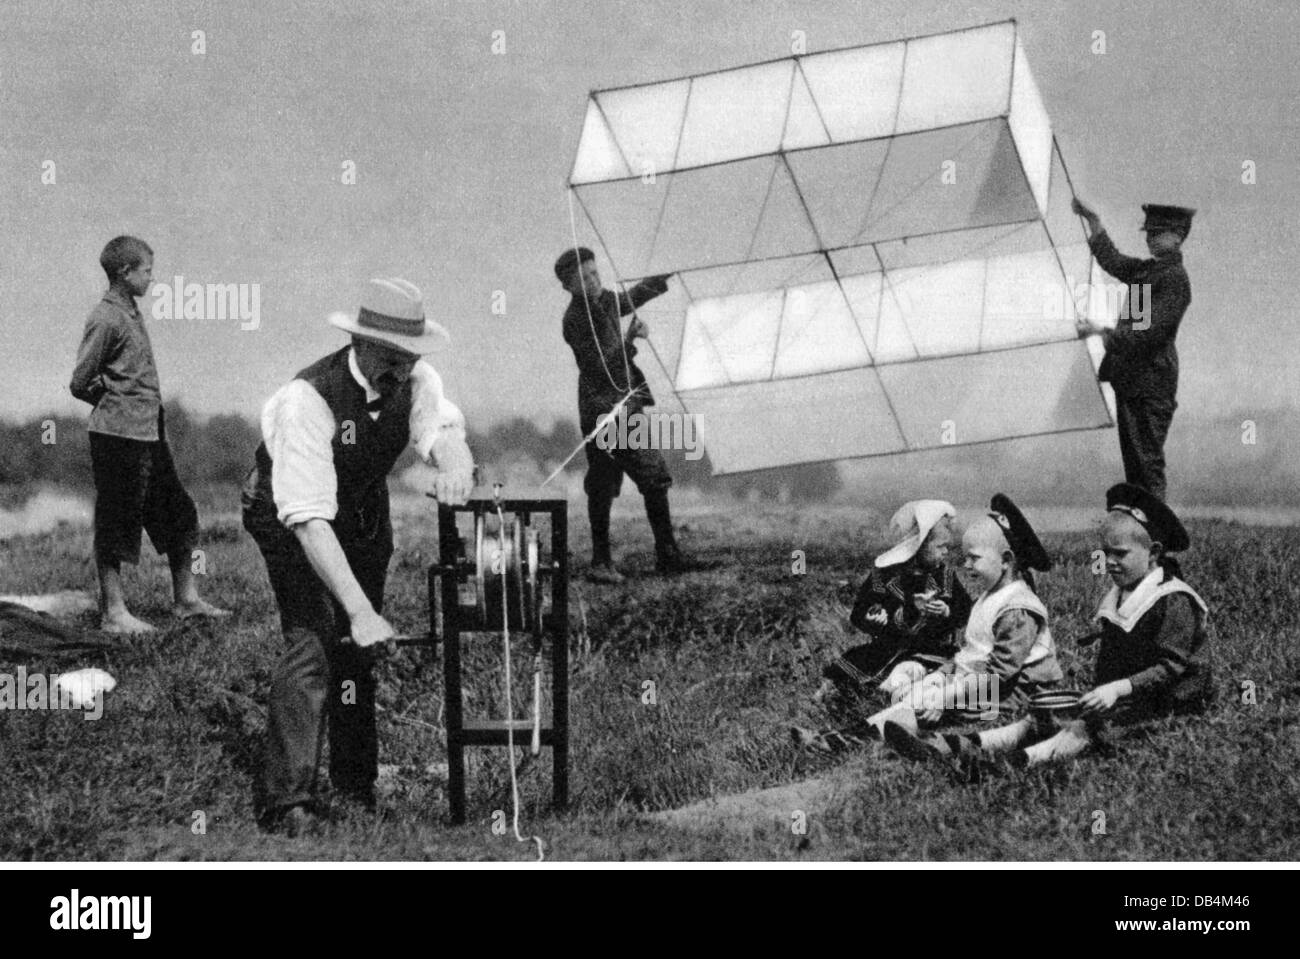 leisure, kiteflying, people letting kites fly, Tempelhof field, Berlin, 1905, Additional-Rights-Clearences-NA Stock Photo